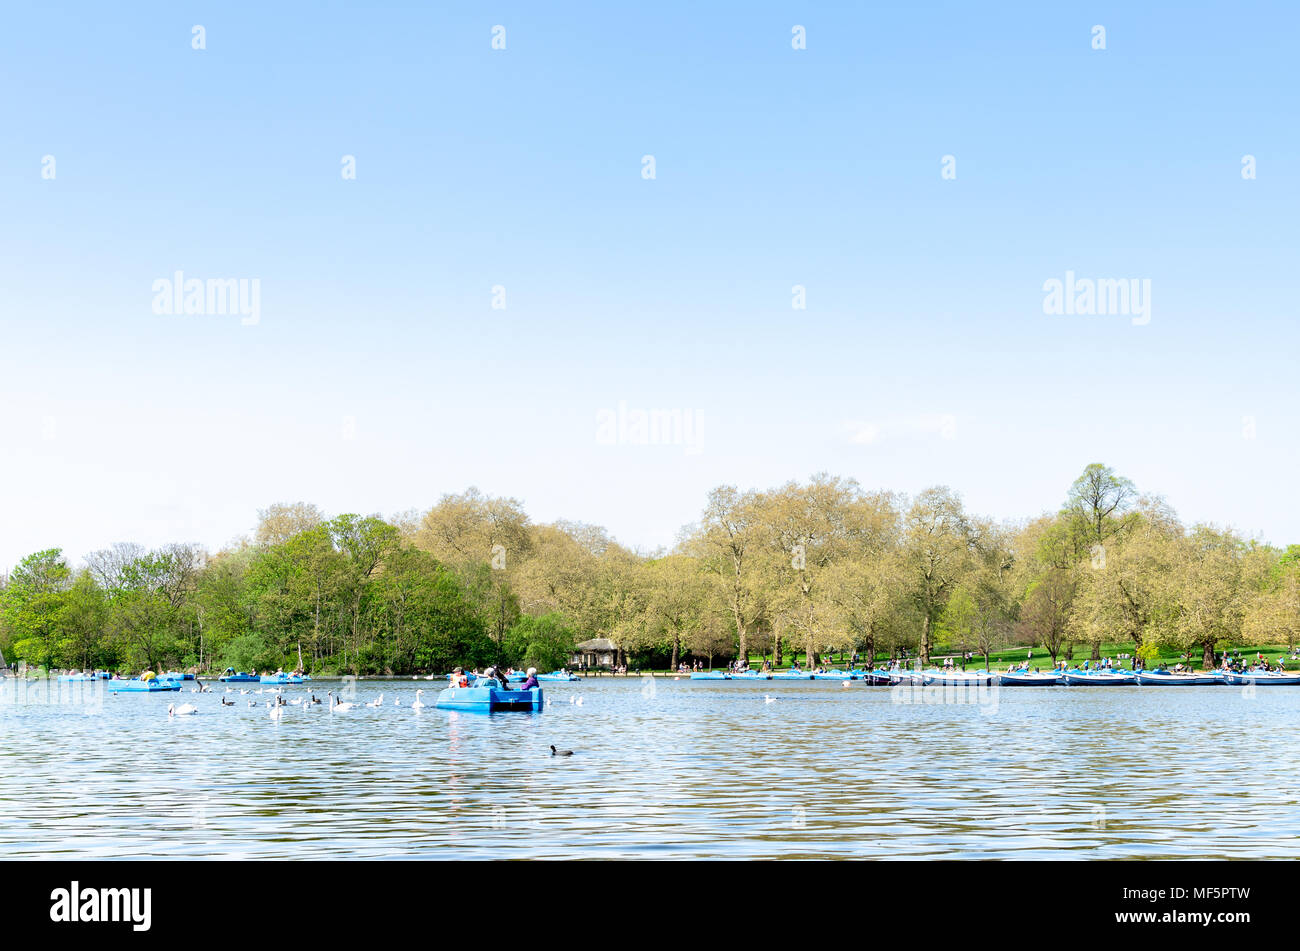 Tourists on the Serpentine at Hyde Park under a blue sky, London - Stock Image